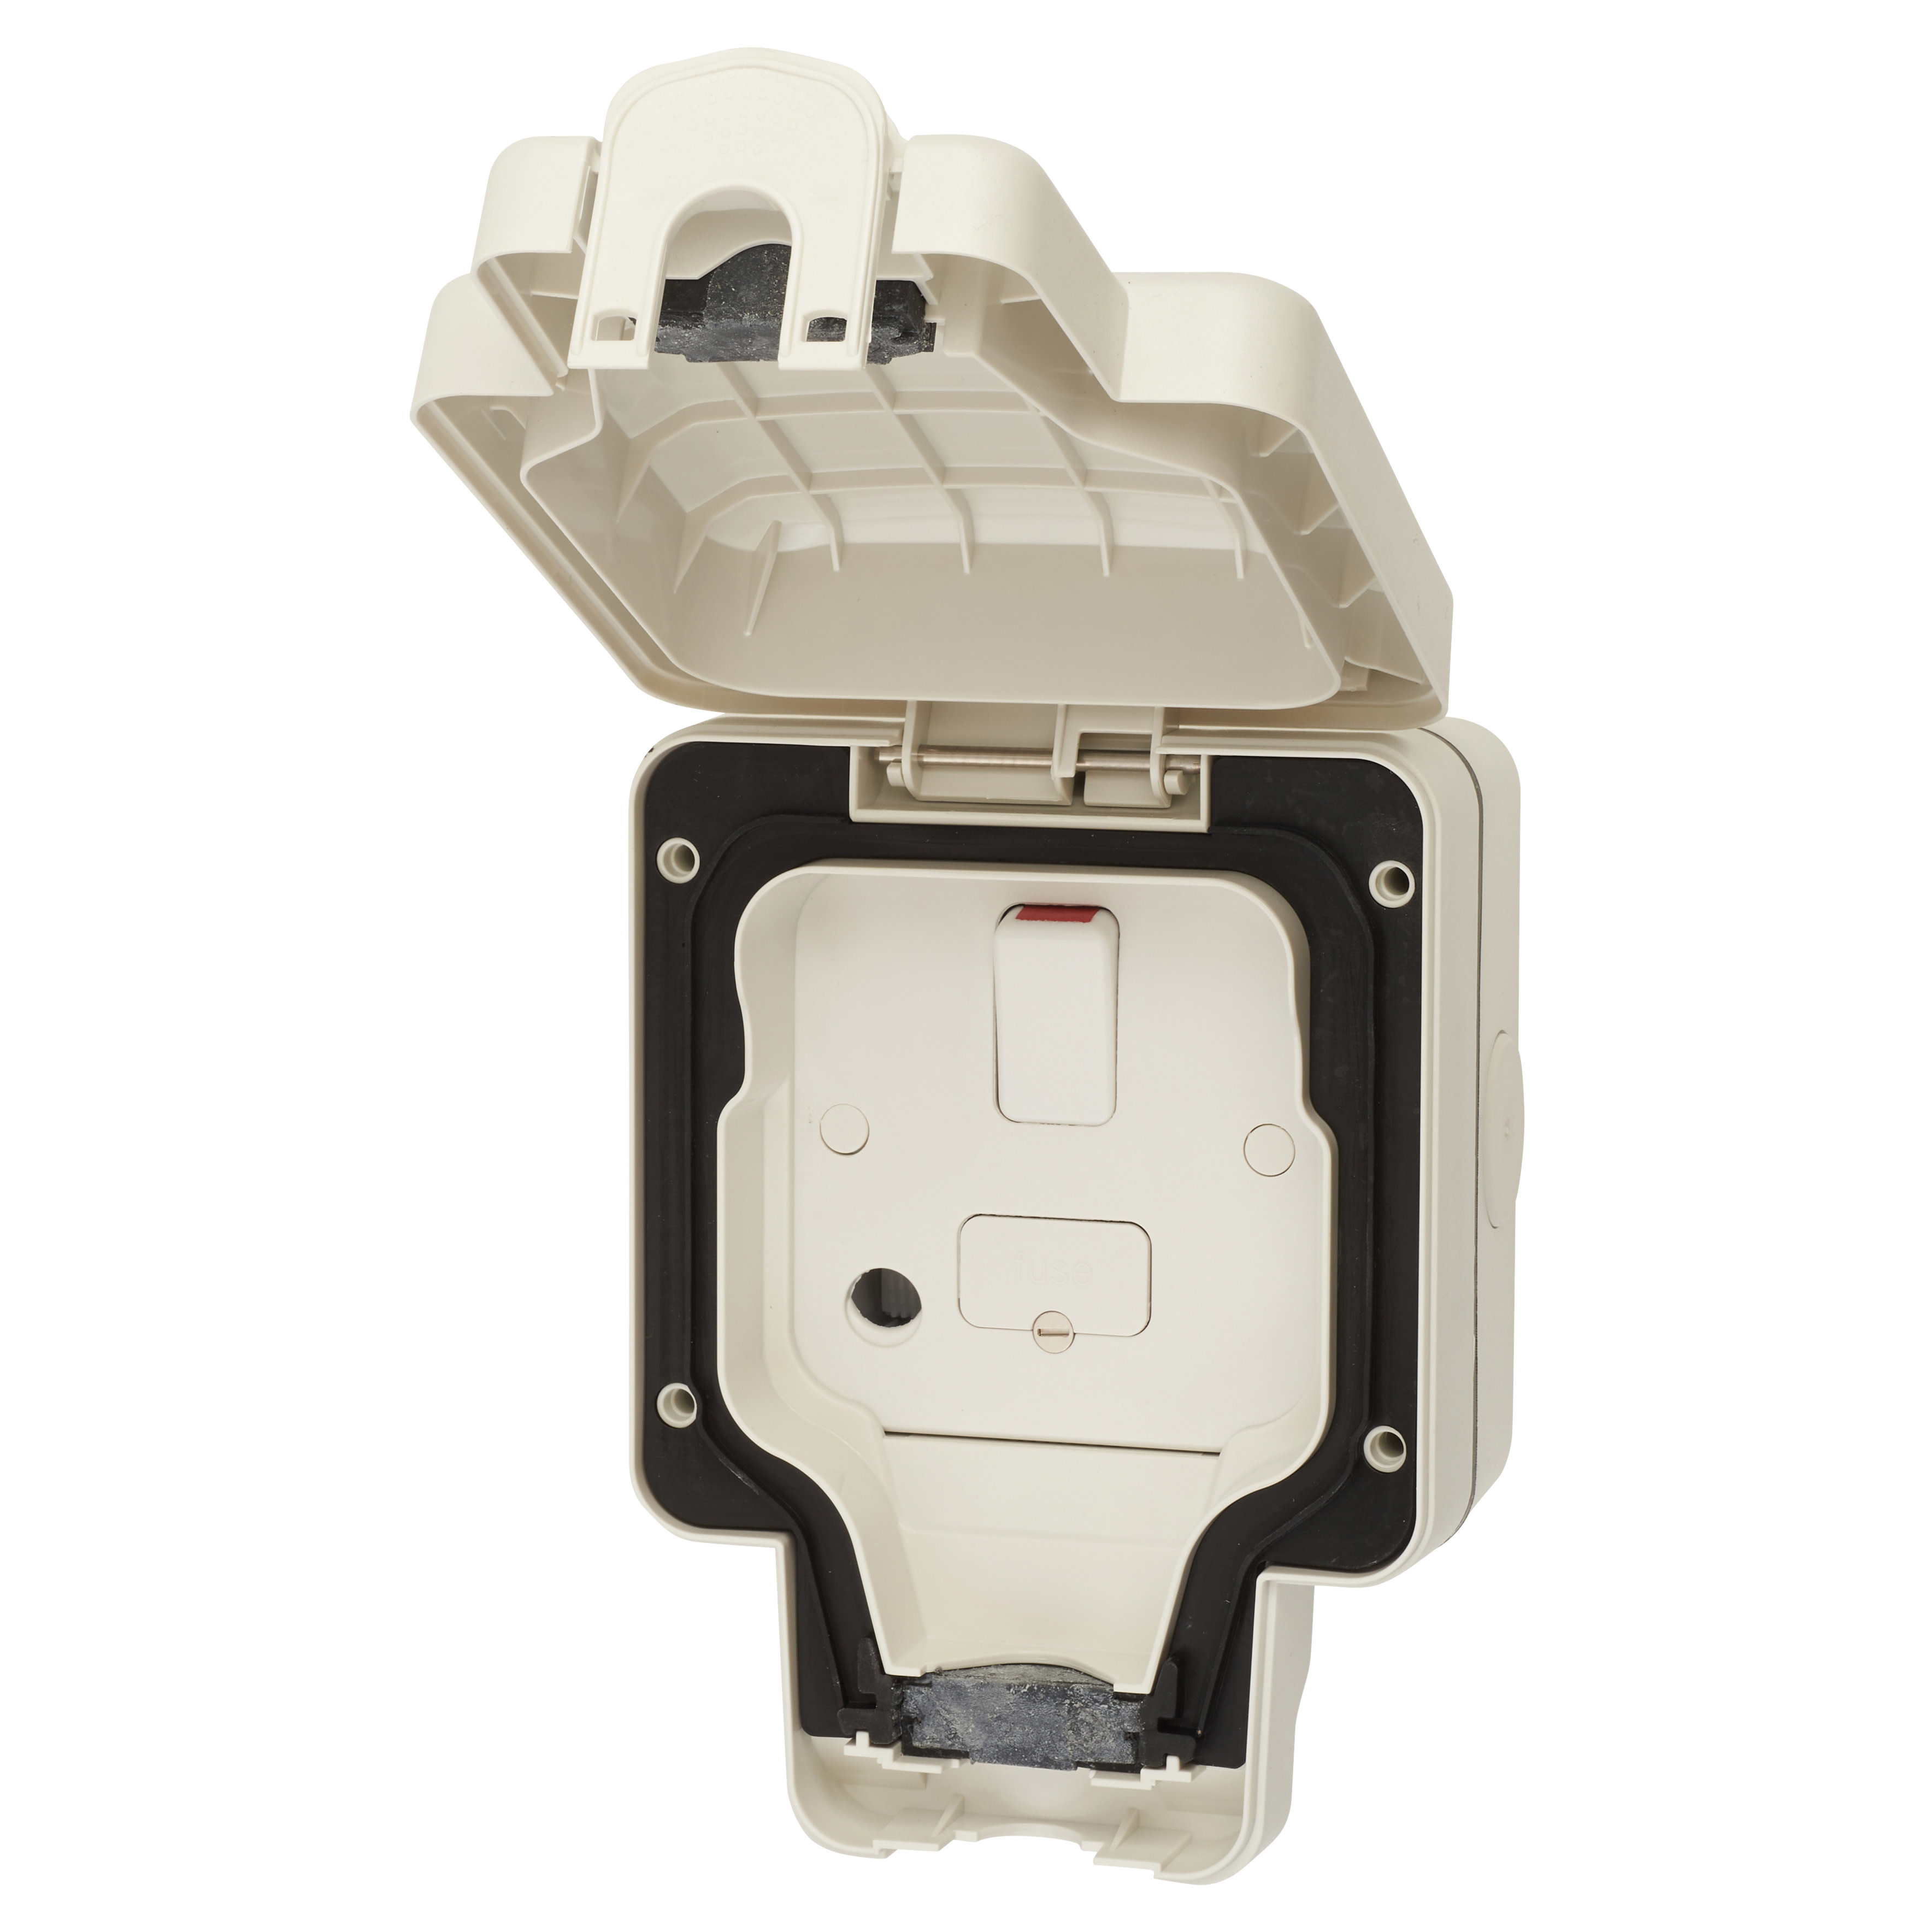 MK Masterseal Plus 13A IP66 1 Gang Outdoor Switched Fused Spur - White)